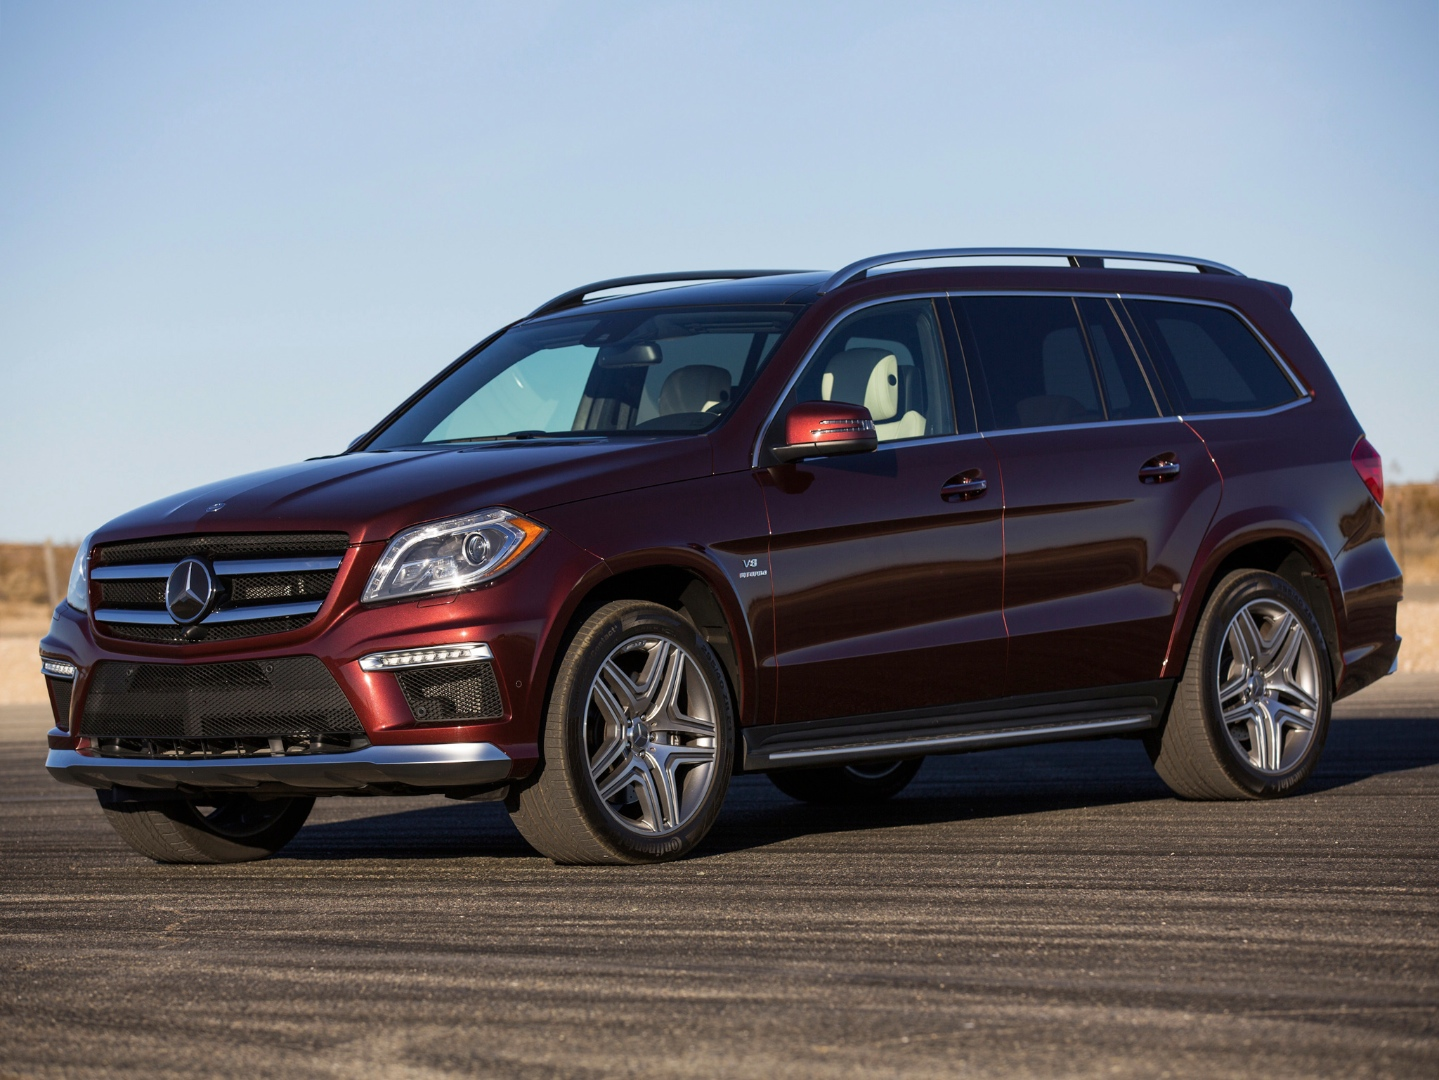 Mercedes benz usa recalls 69 gl class models autoevolution for Recalls on mercedes benz